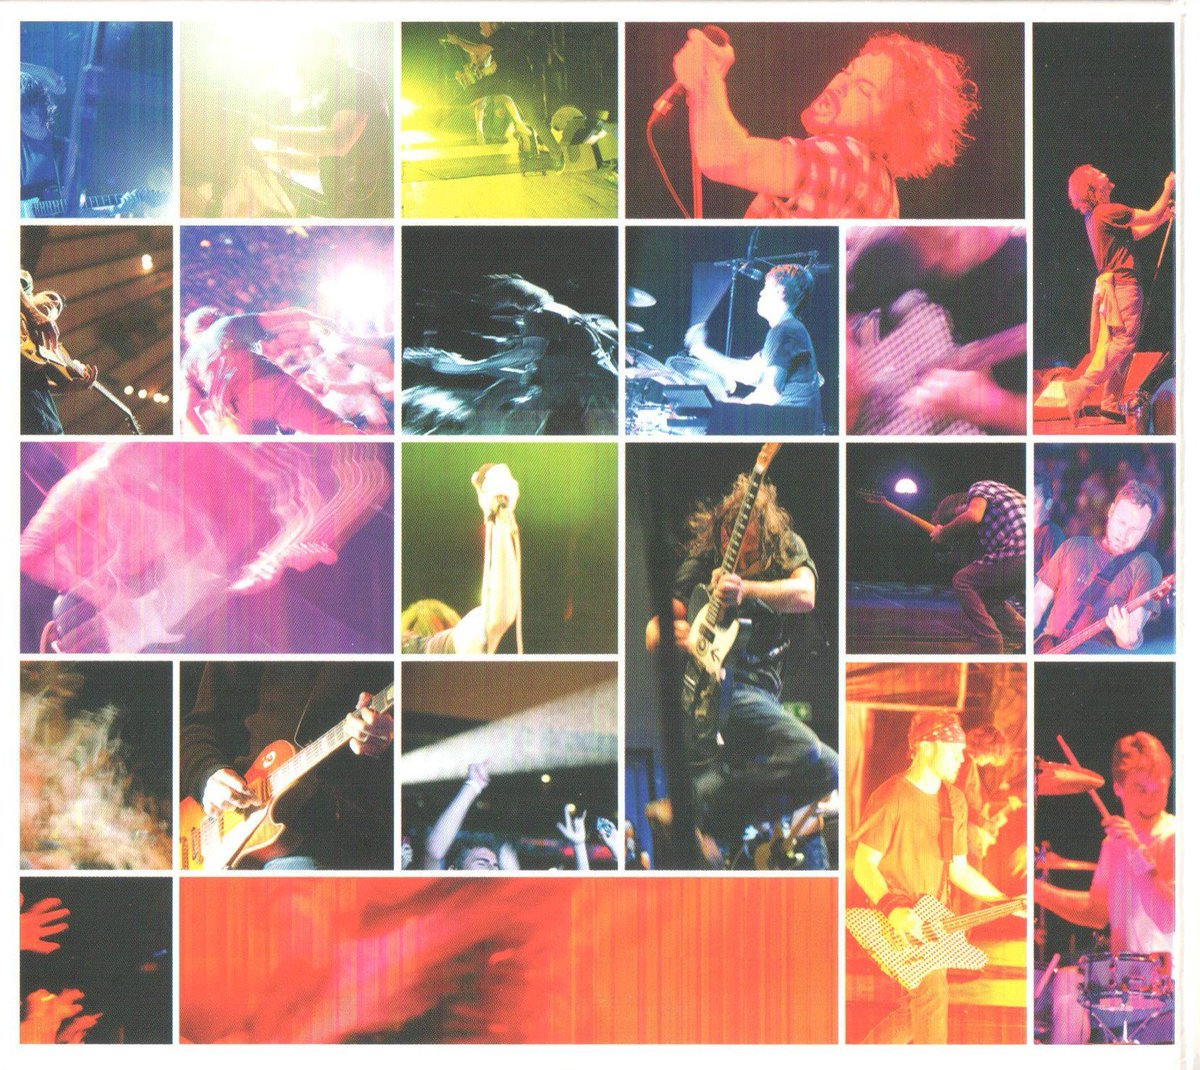 #OnThisDay in 2011, the #PearlJam compilation album, Live on Ten Legs, was released. The album featured highlights from the 2003-2010 world tours.   Which shows during this time period did you attend? <br>http://pic.twitter.com/dvoB3PSLO3